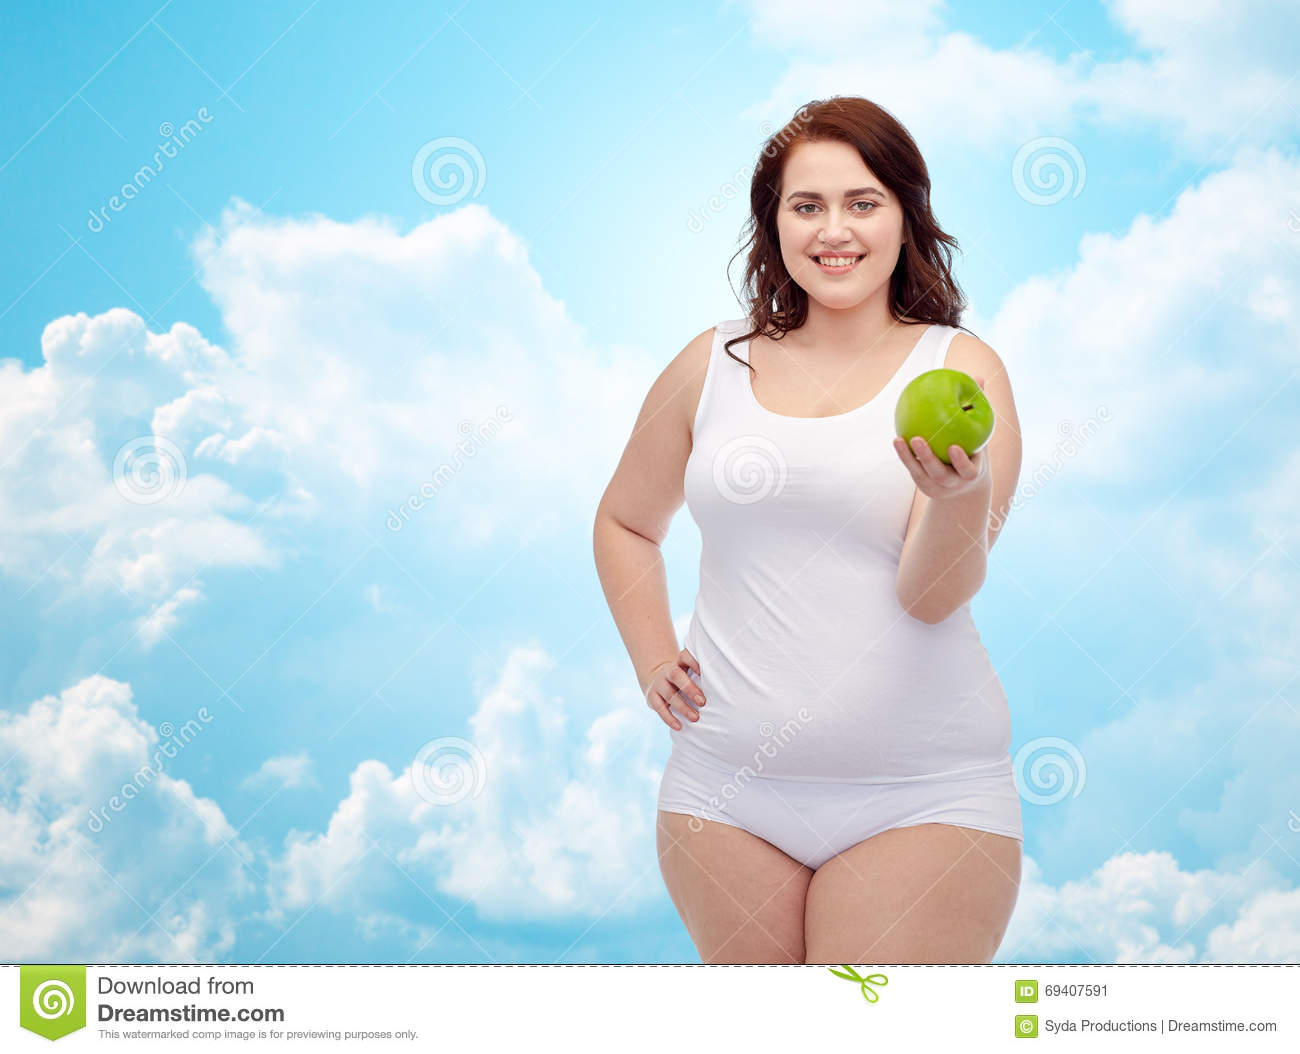 c6215fc5a22 Happy Plus Size Woman In Underwear With Apple Stock Image - Image of ...